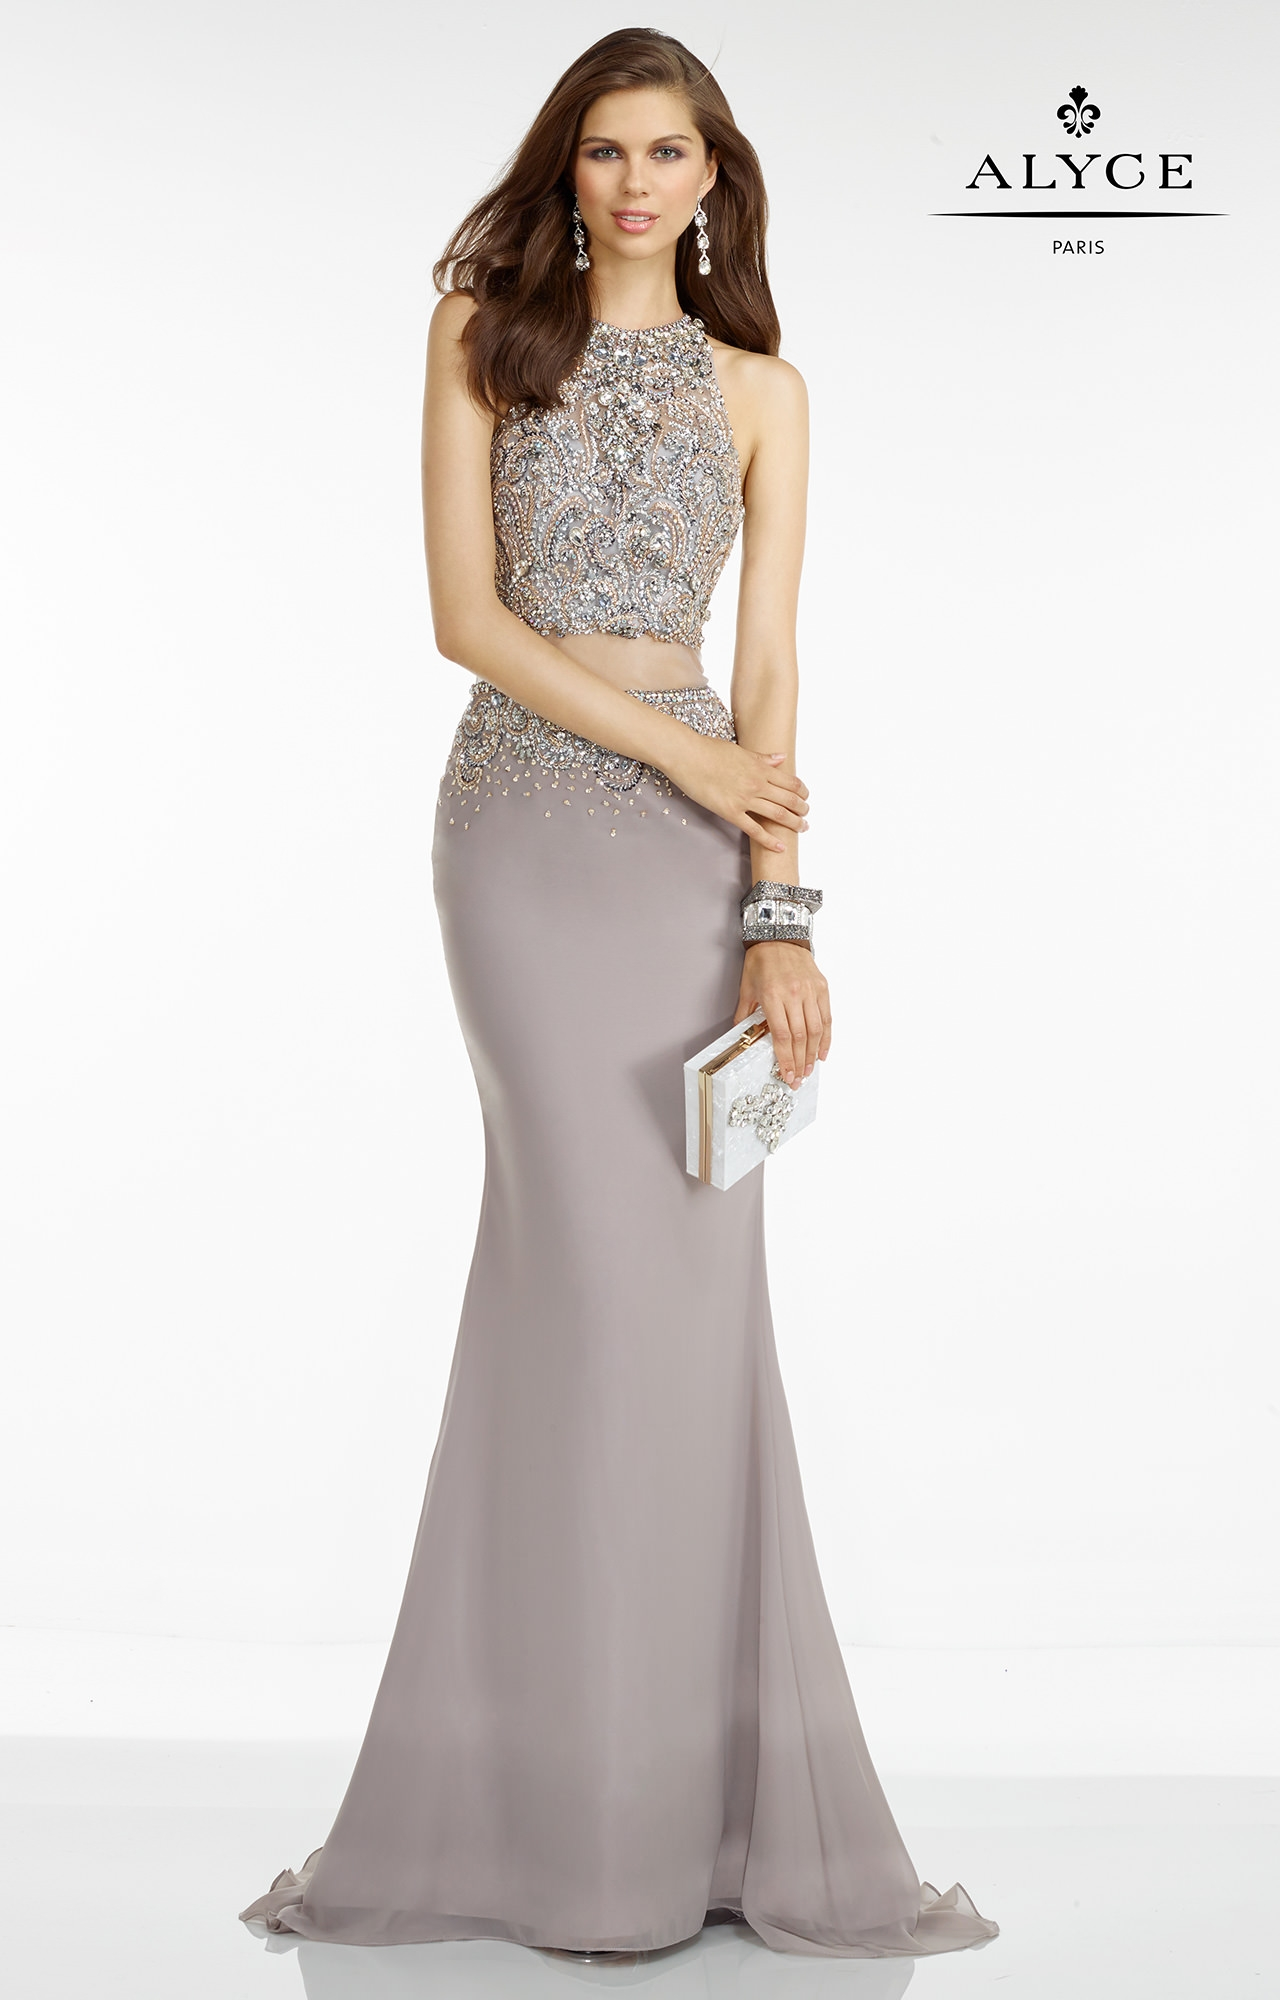 Alyce Paris 6616 - Light Up the Night Dress Prom Dress - photo#46